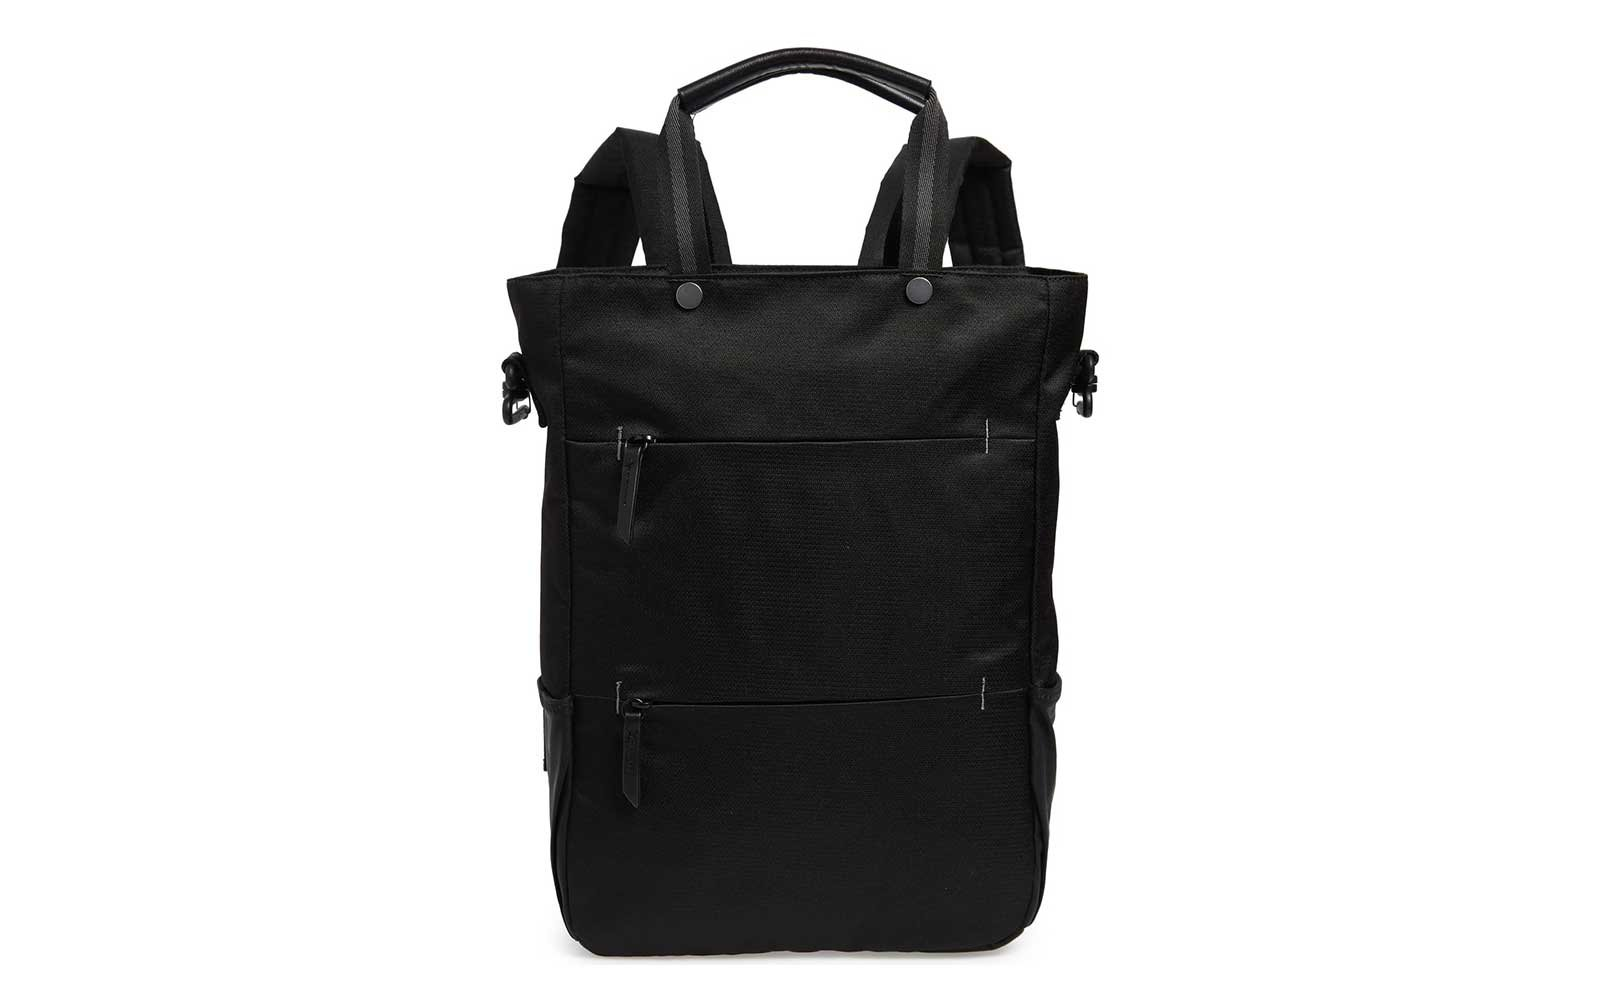 d0e492ad39b3 13 Convertible Bags That Do Double (and Triple) Duty